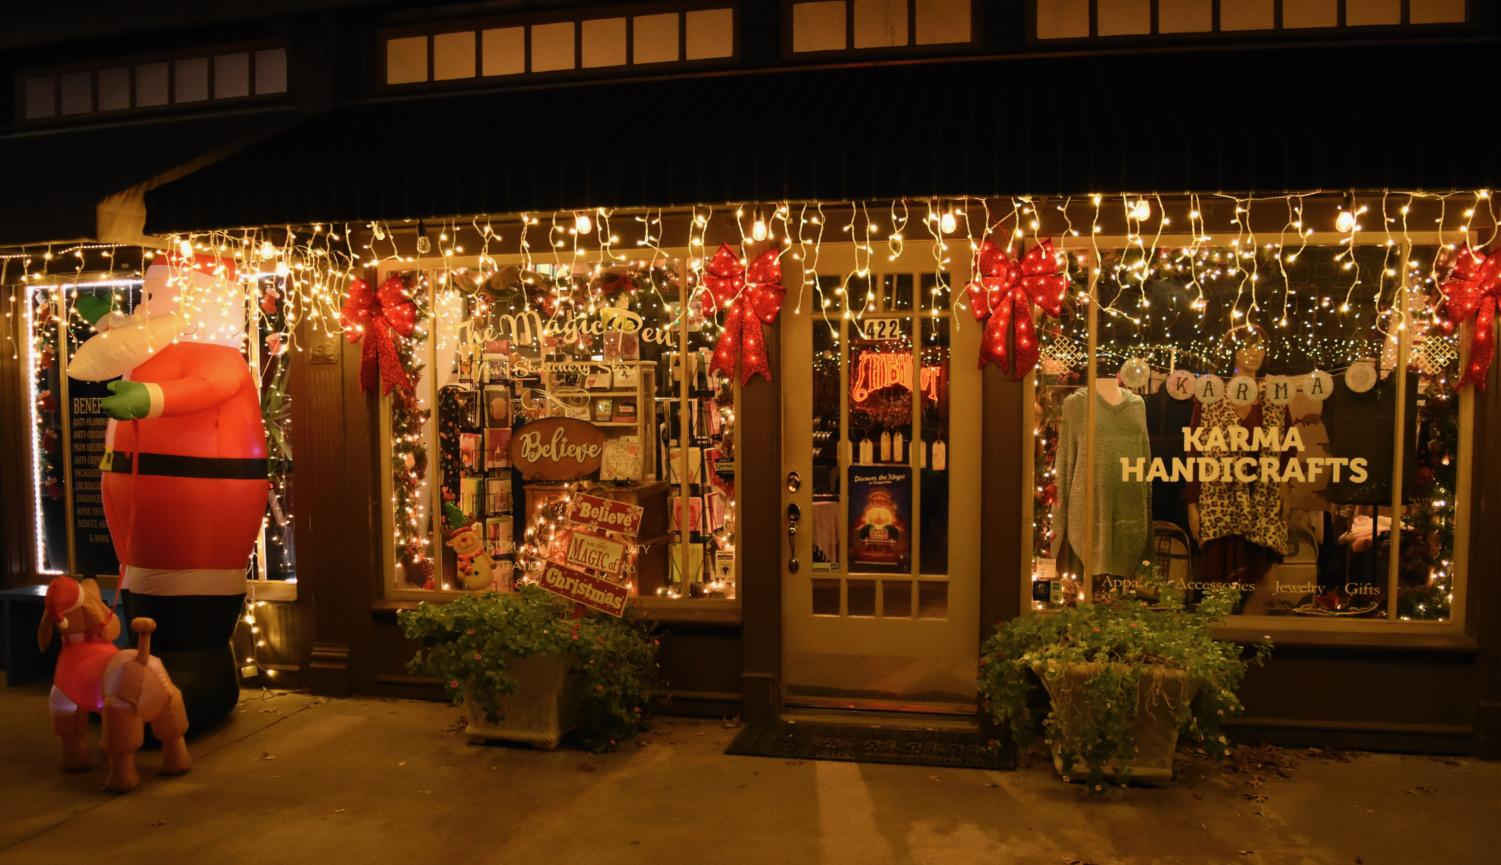 Along+Main+Street+of+Grapevine%2C+storefronts+sparkle+with+lights+and+festive+Christmas+decorations+to+celebrate+the+holiday+season.+Grapevine+is+known+for+its+name+%E2%80%9CThe+Christmas+Capital+of+Texas%E2%80%9D+for+their+annual+decorations%2C+parade%2C+and+the+North+Pole+Express+train.